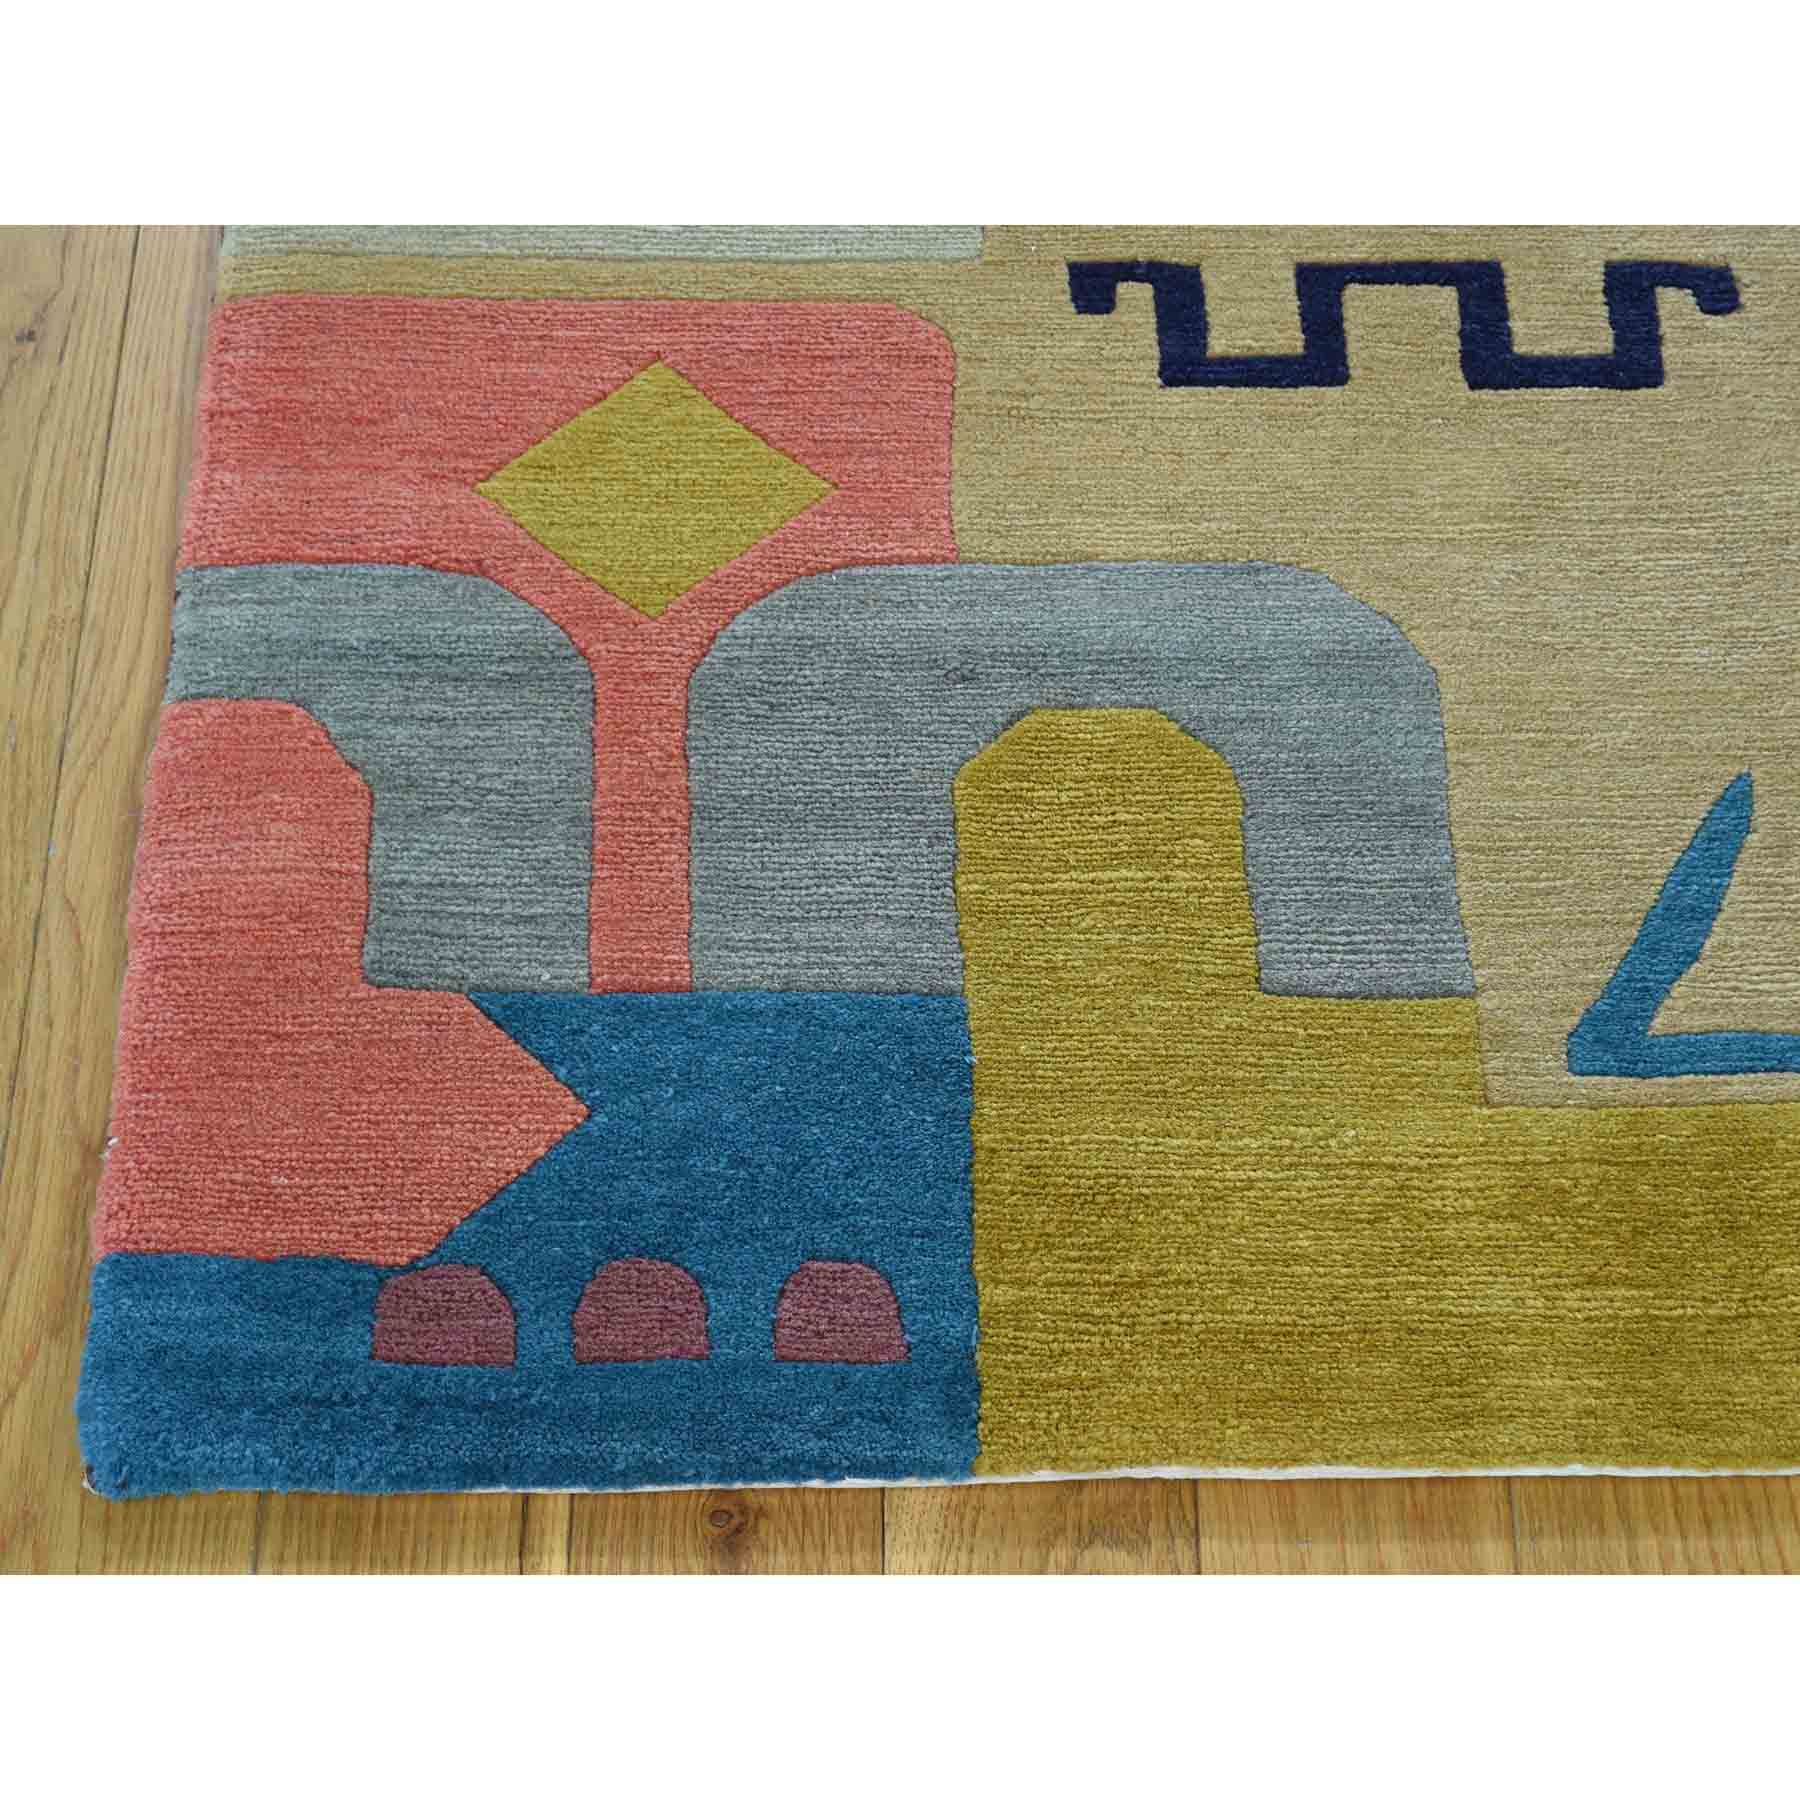 Modern-Contemporary-Hand-Knotted-Rug-170425